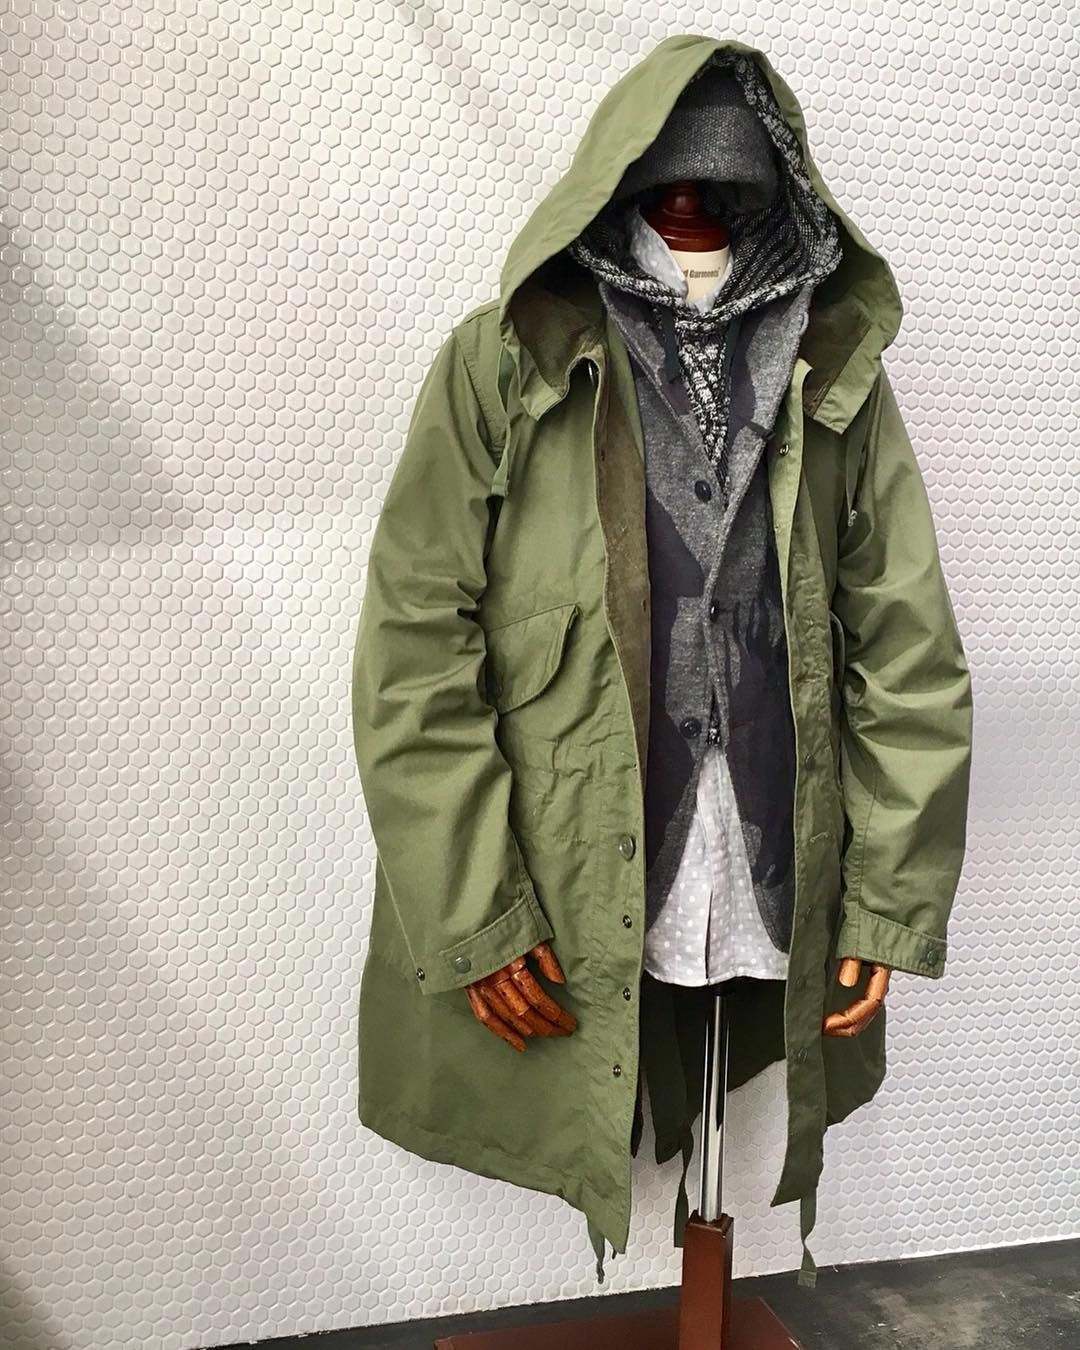 1 208 Begenme 2 Yorum Instagram Da Engineered Garments Tokyo Engineered Garments Tokyo 20 Engineered